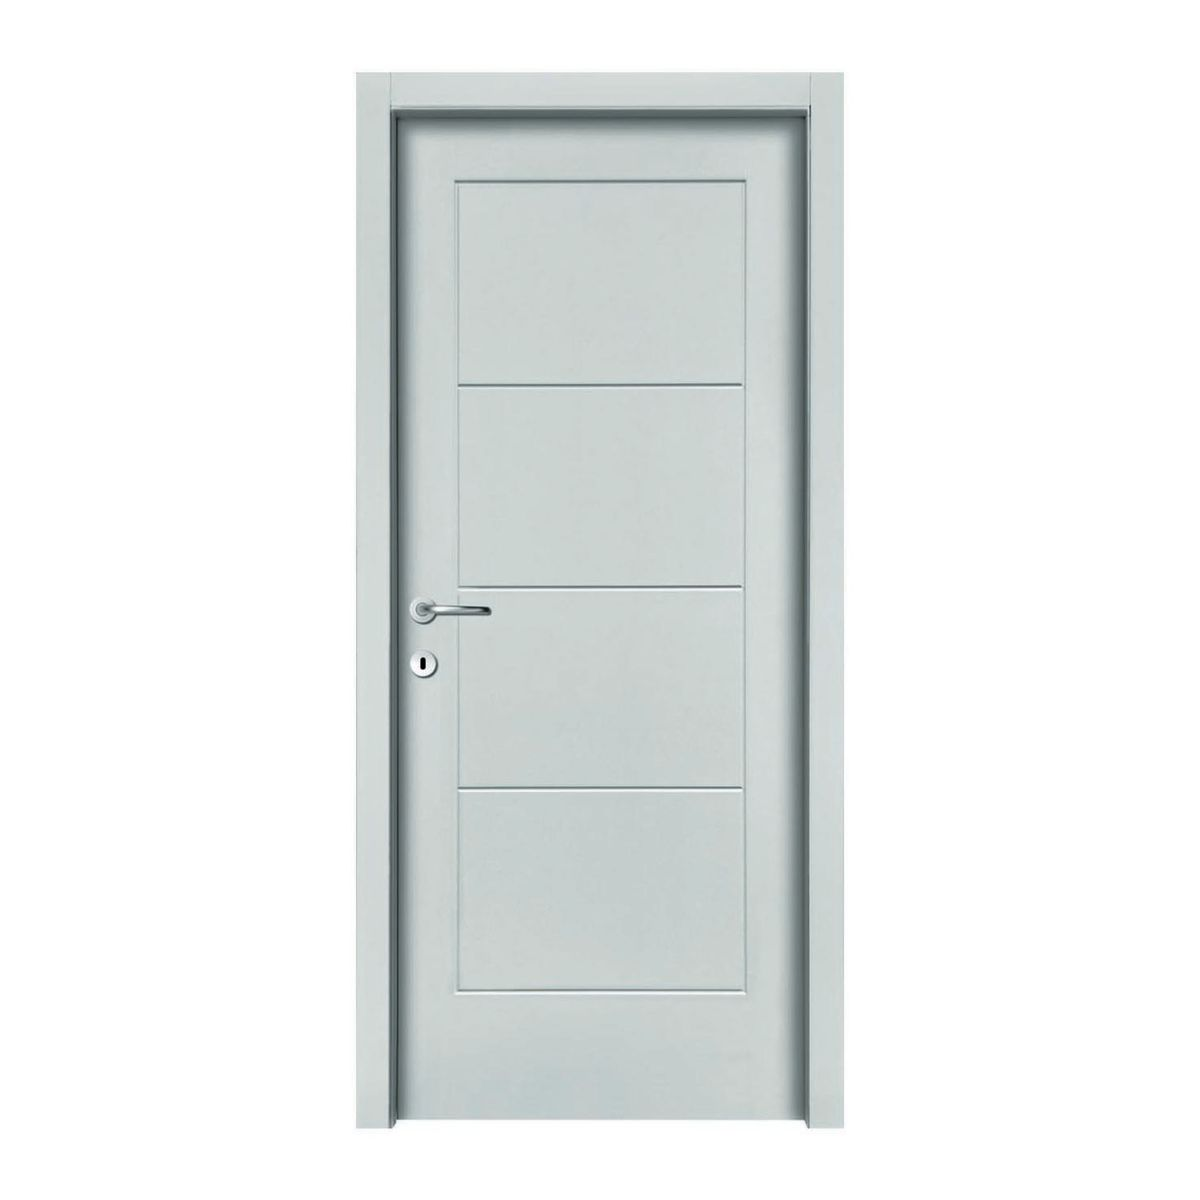 Porte interne leroy merlin porta da interno battente for Serramenti pvc leroy merlin